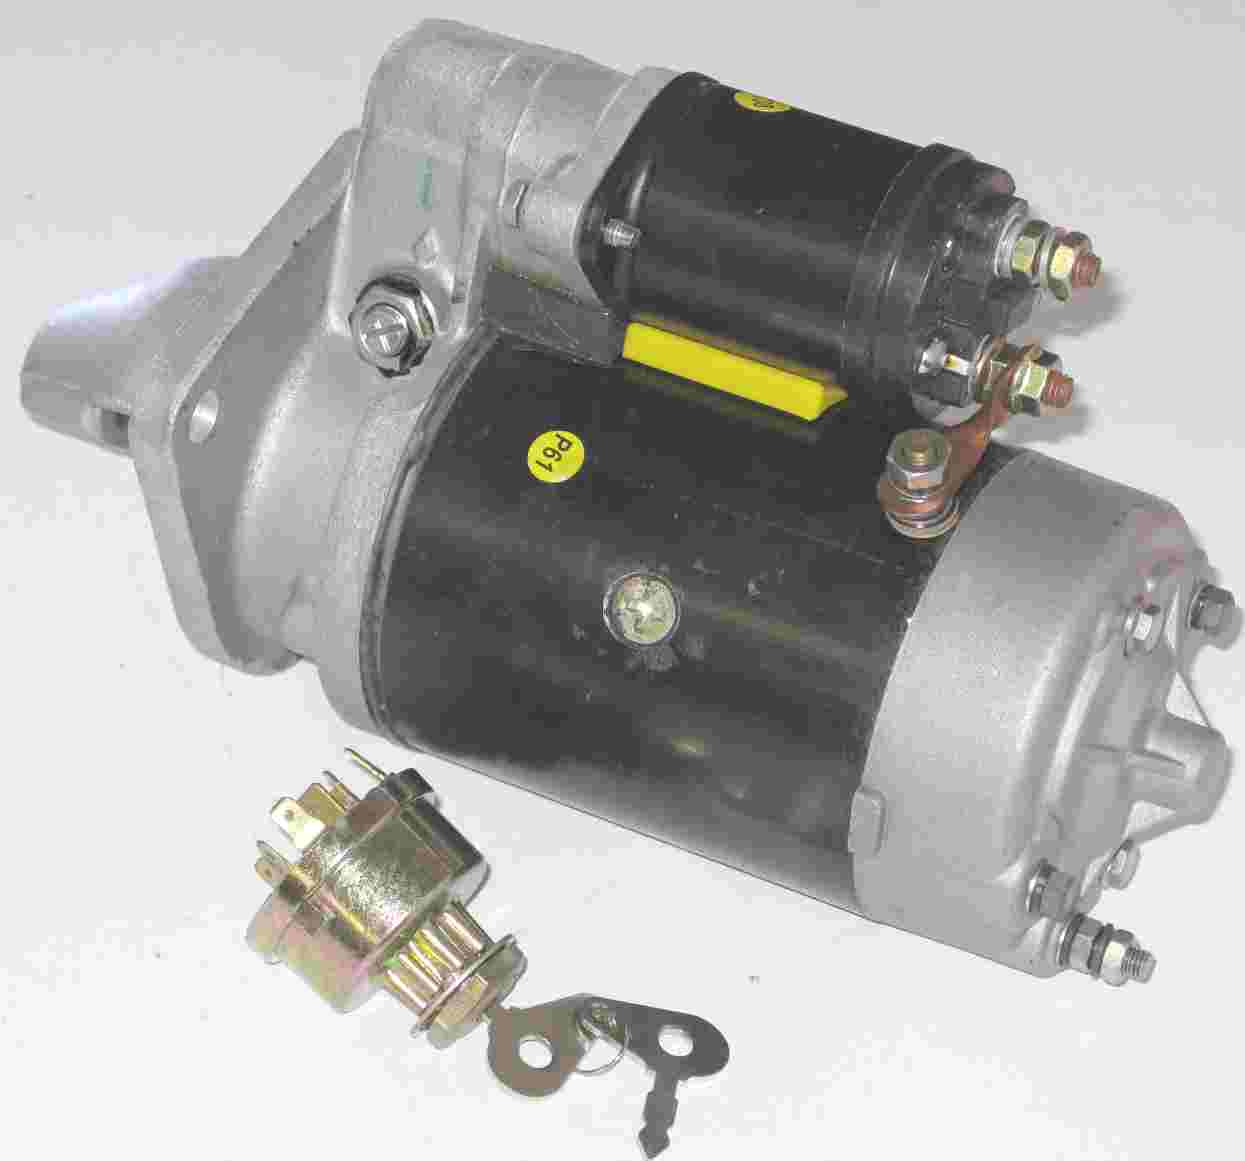 hight resolution of fordson major starter motor wiring diagram schematic diagramford dexta wiring diagram wiring diagram motor starter schematic